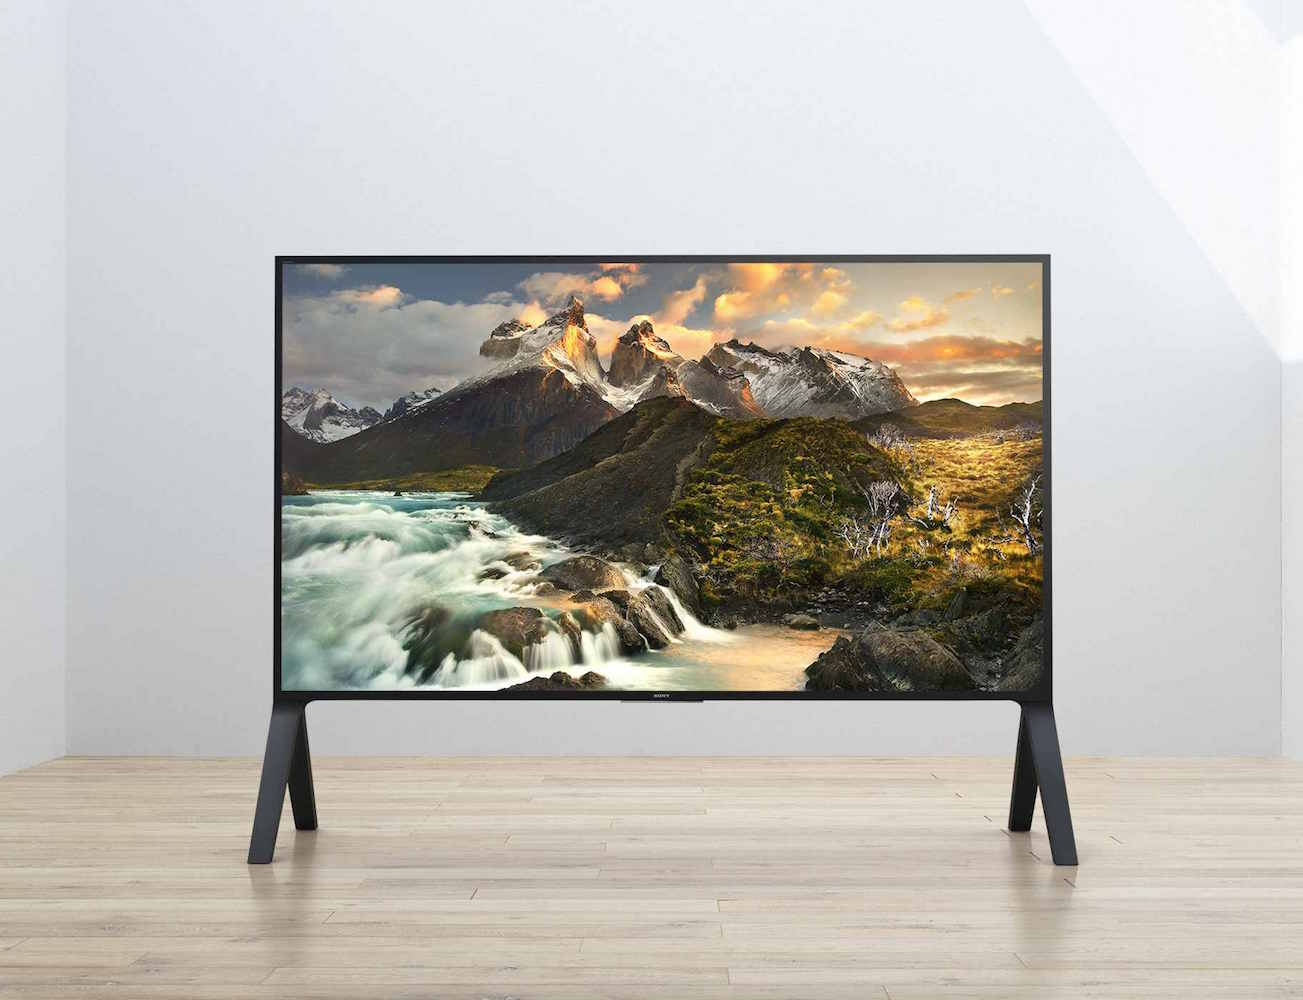 Sony Z9D 4K HDR TV with Android